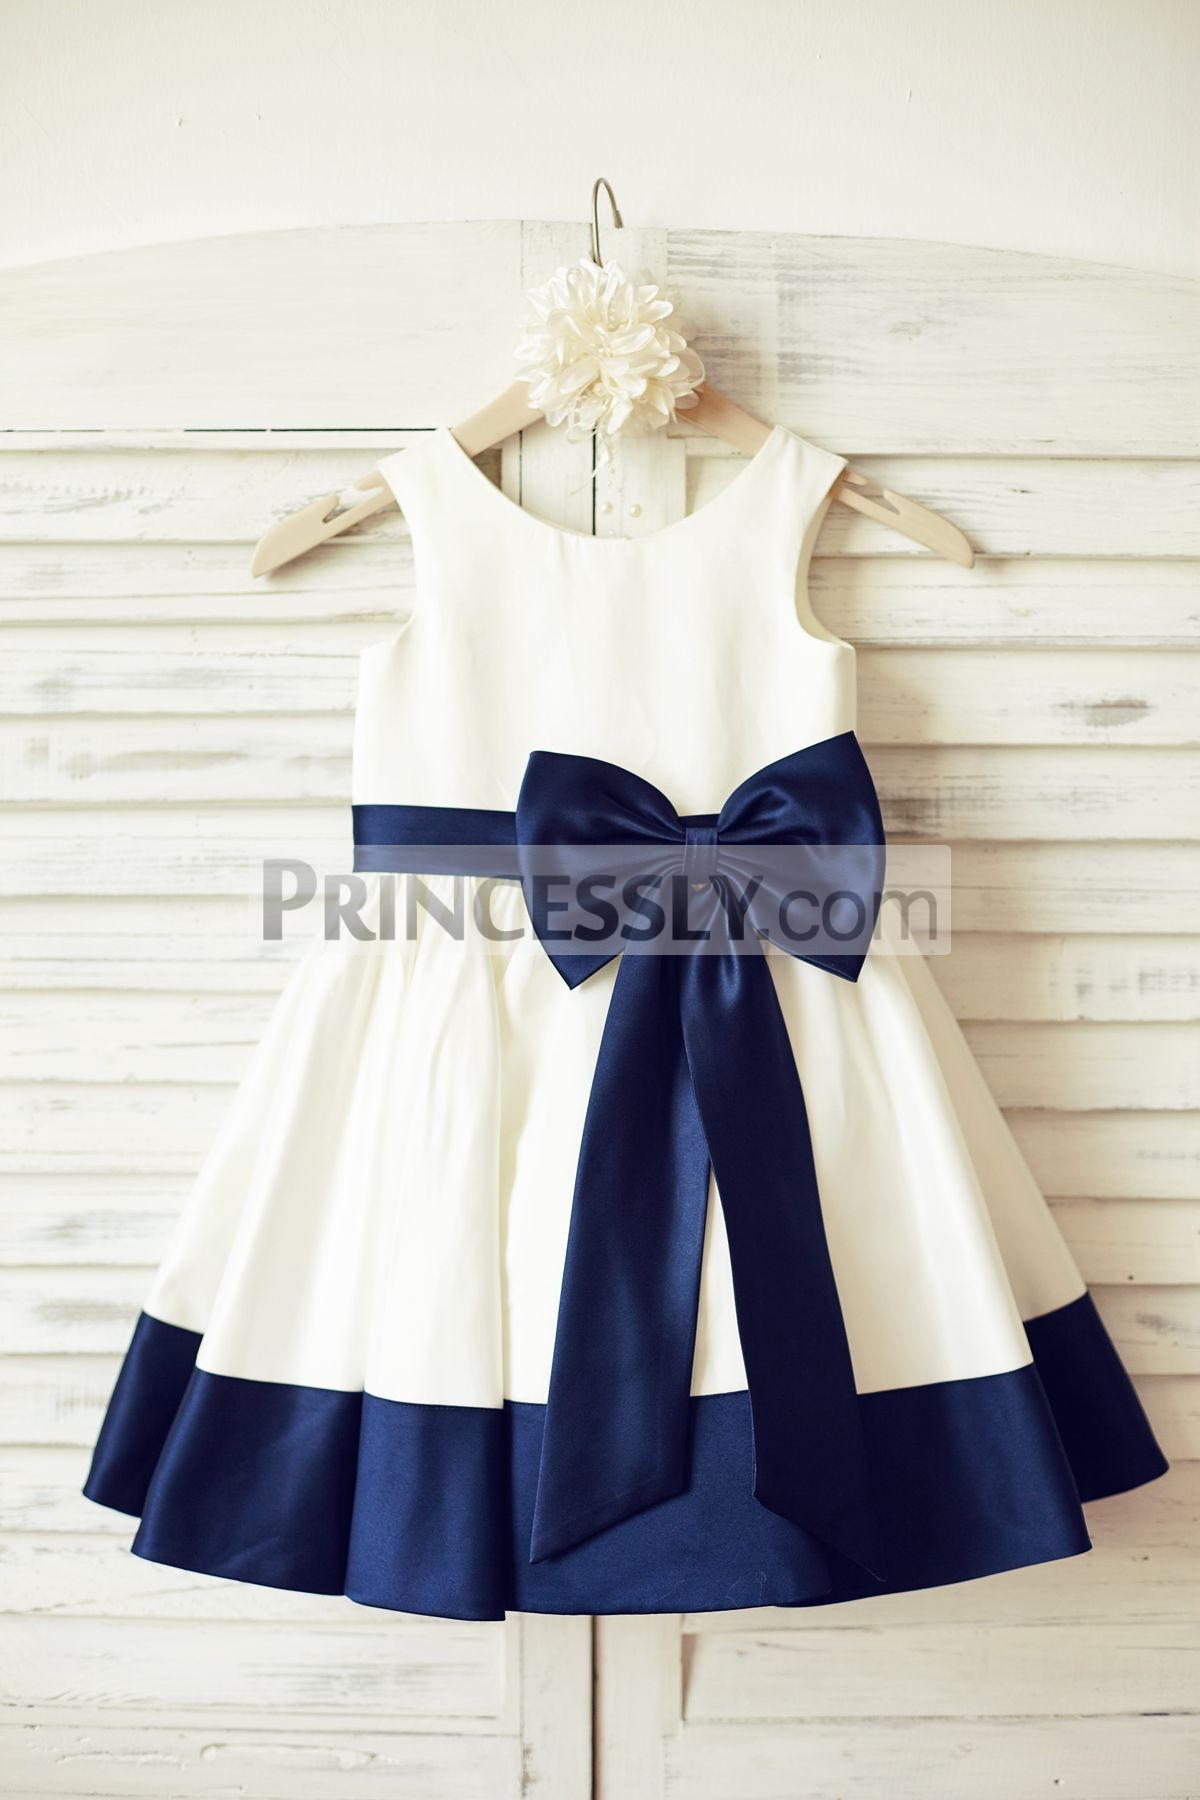 Ivory Satin Flower Girl Dress with Navy Blue Bow and Sash